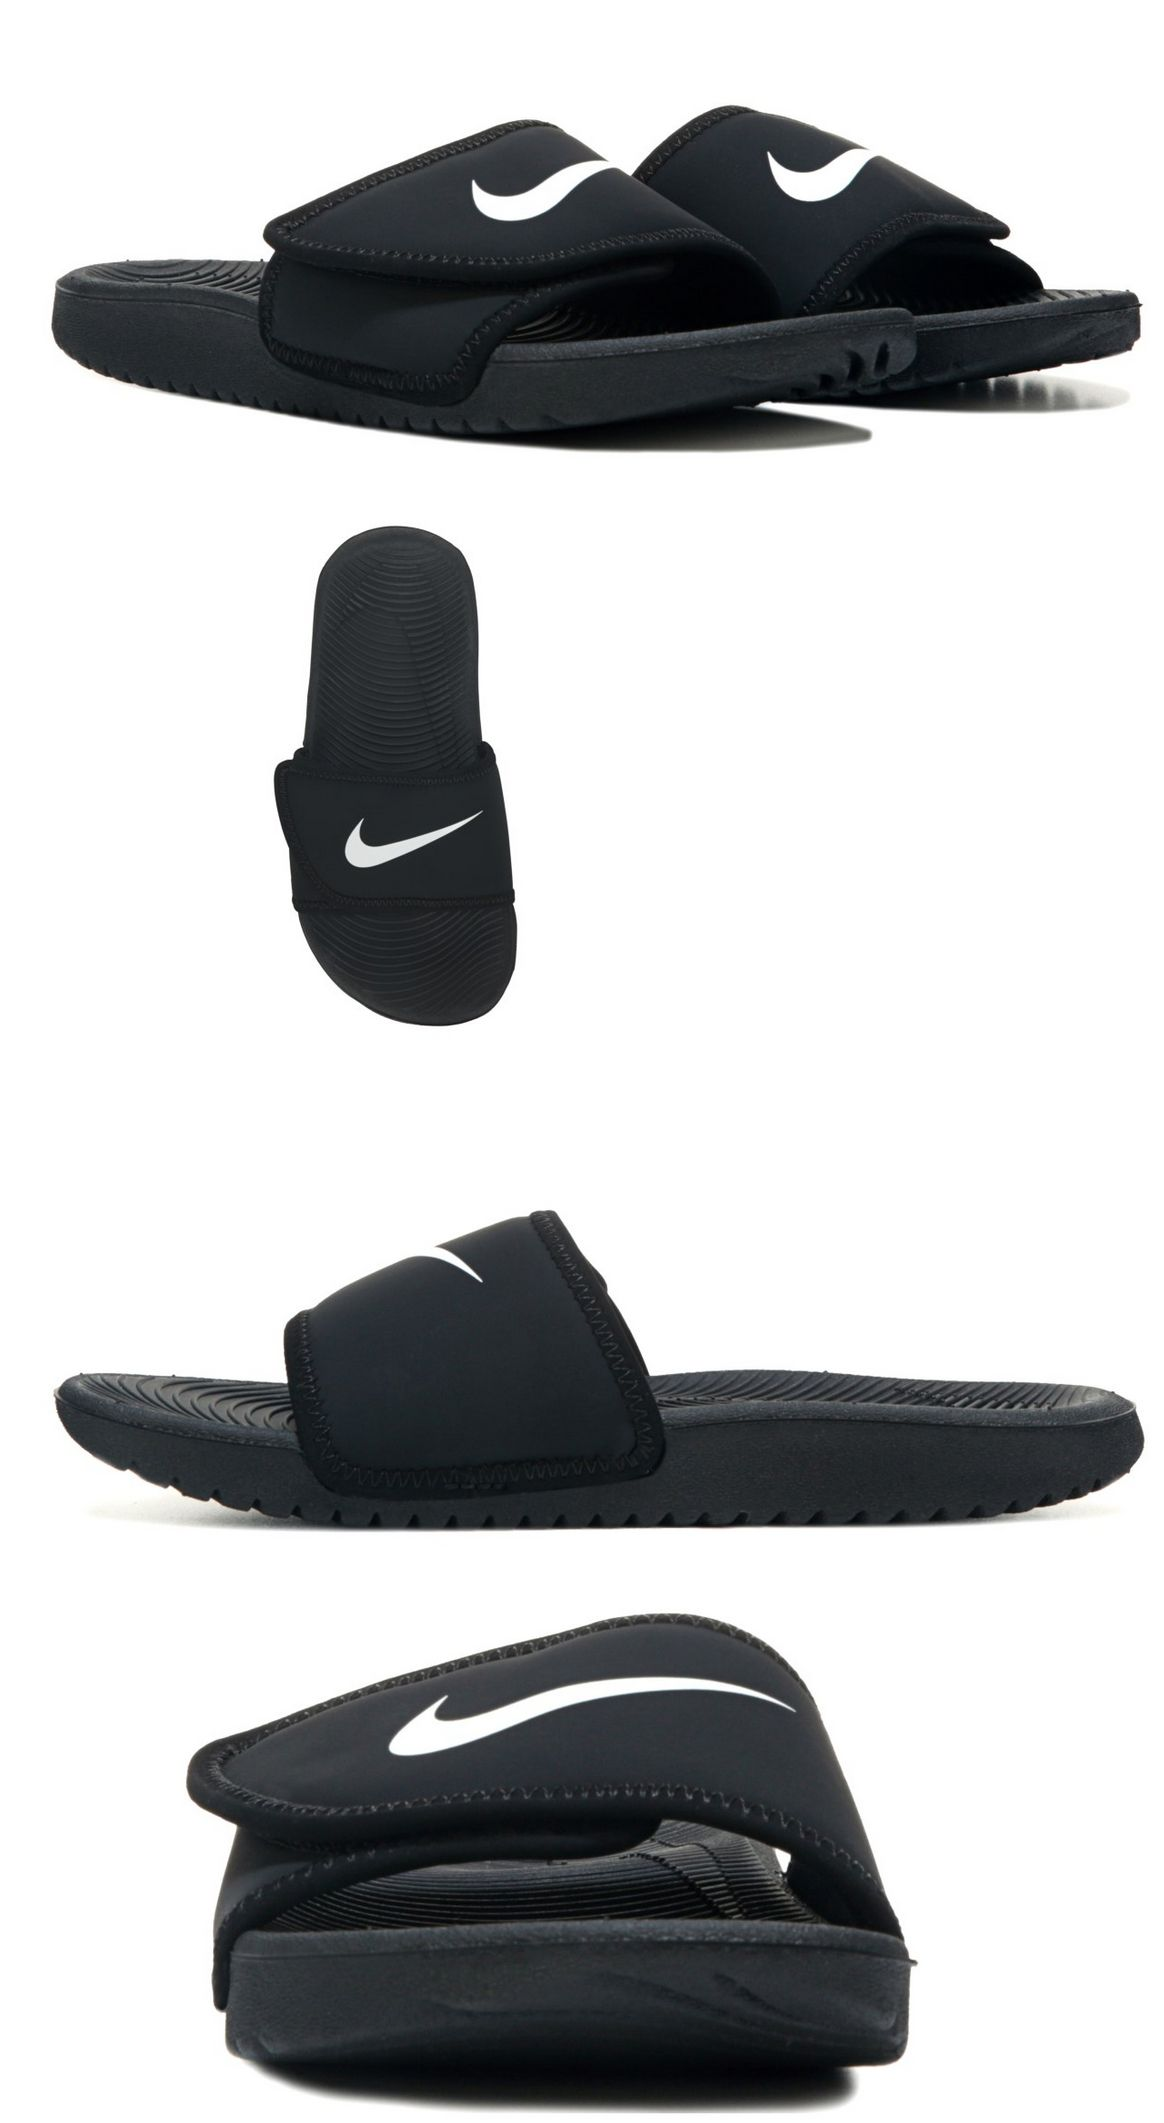 size 40 6c758 82c9c Boys Shoes 57929  Nike Boy S Kawa Adjust (Gs Ps) Black White Slide Sandals  - Assorted Sizes Nwb -  BUY IT NOW ONLY   27.99 on  eBay  shoes  adjust   black ...